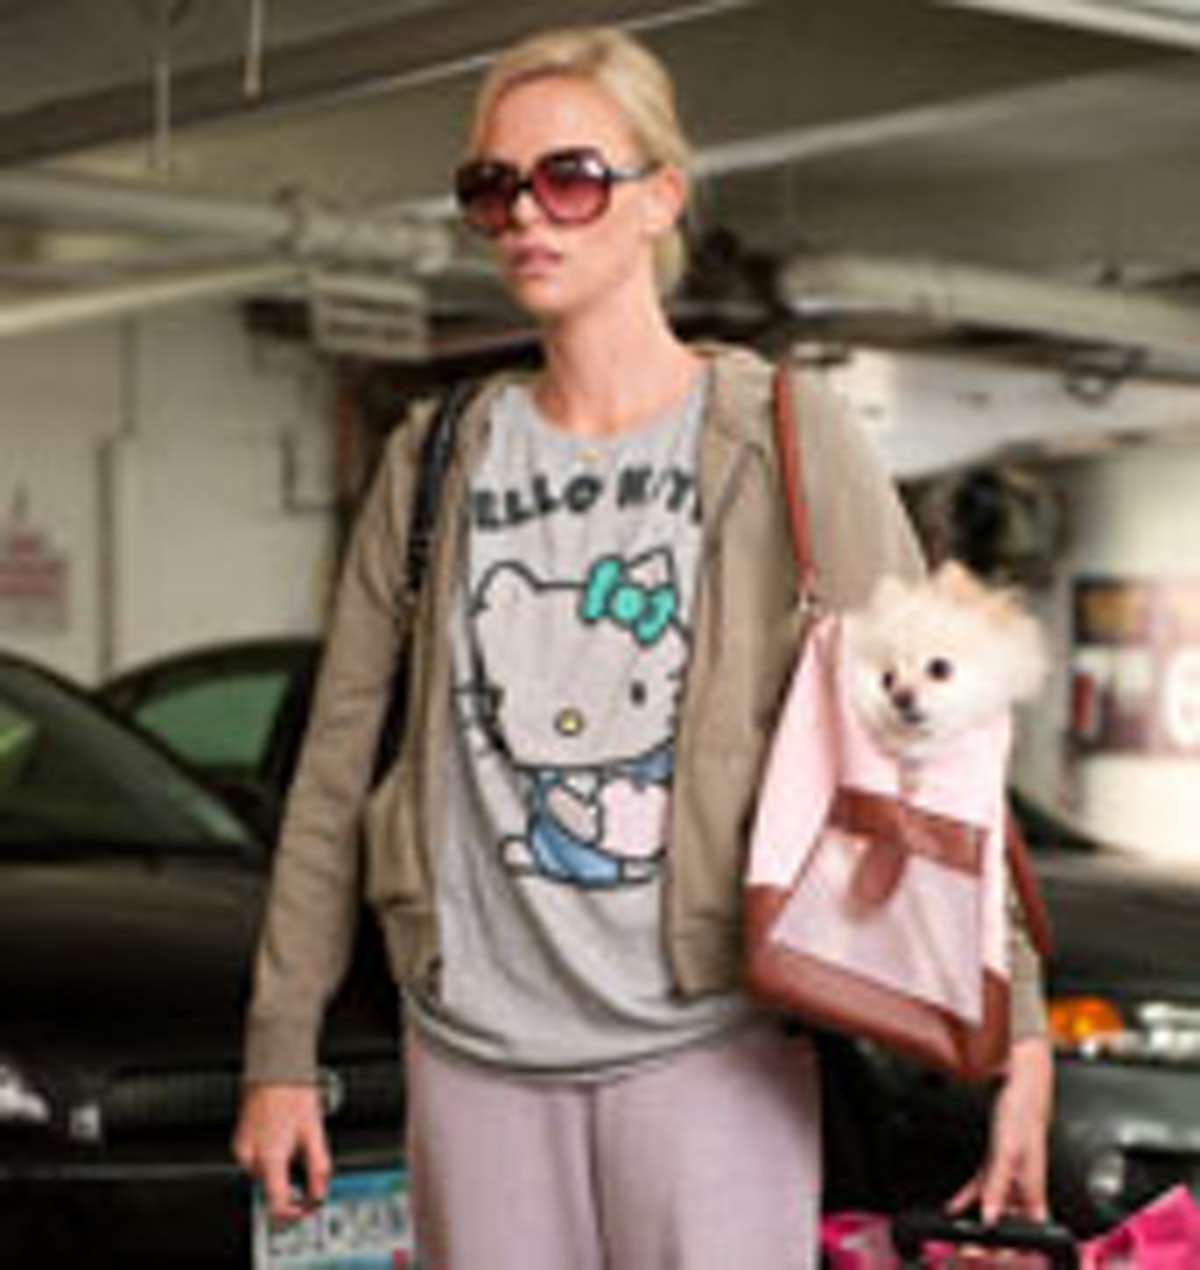 fass-young-adult-fashion-search.jpg